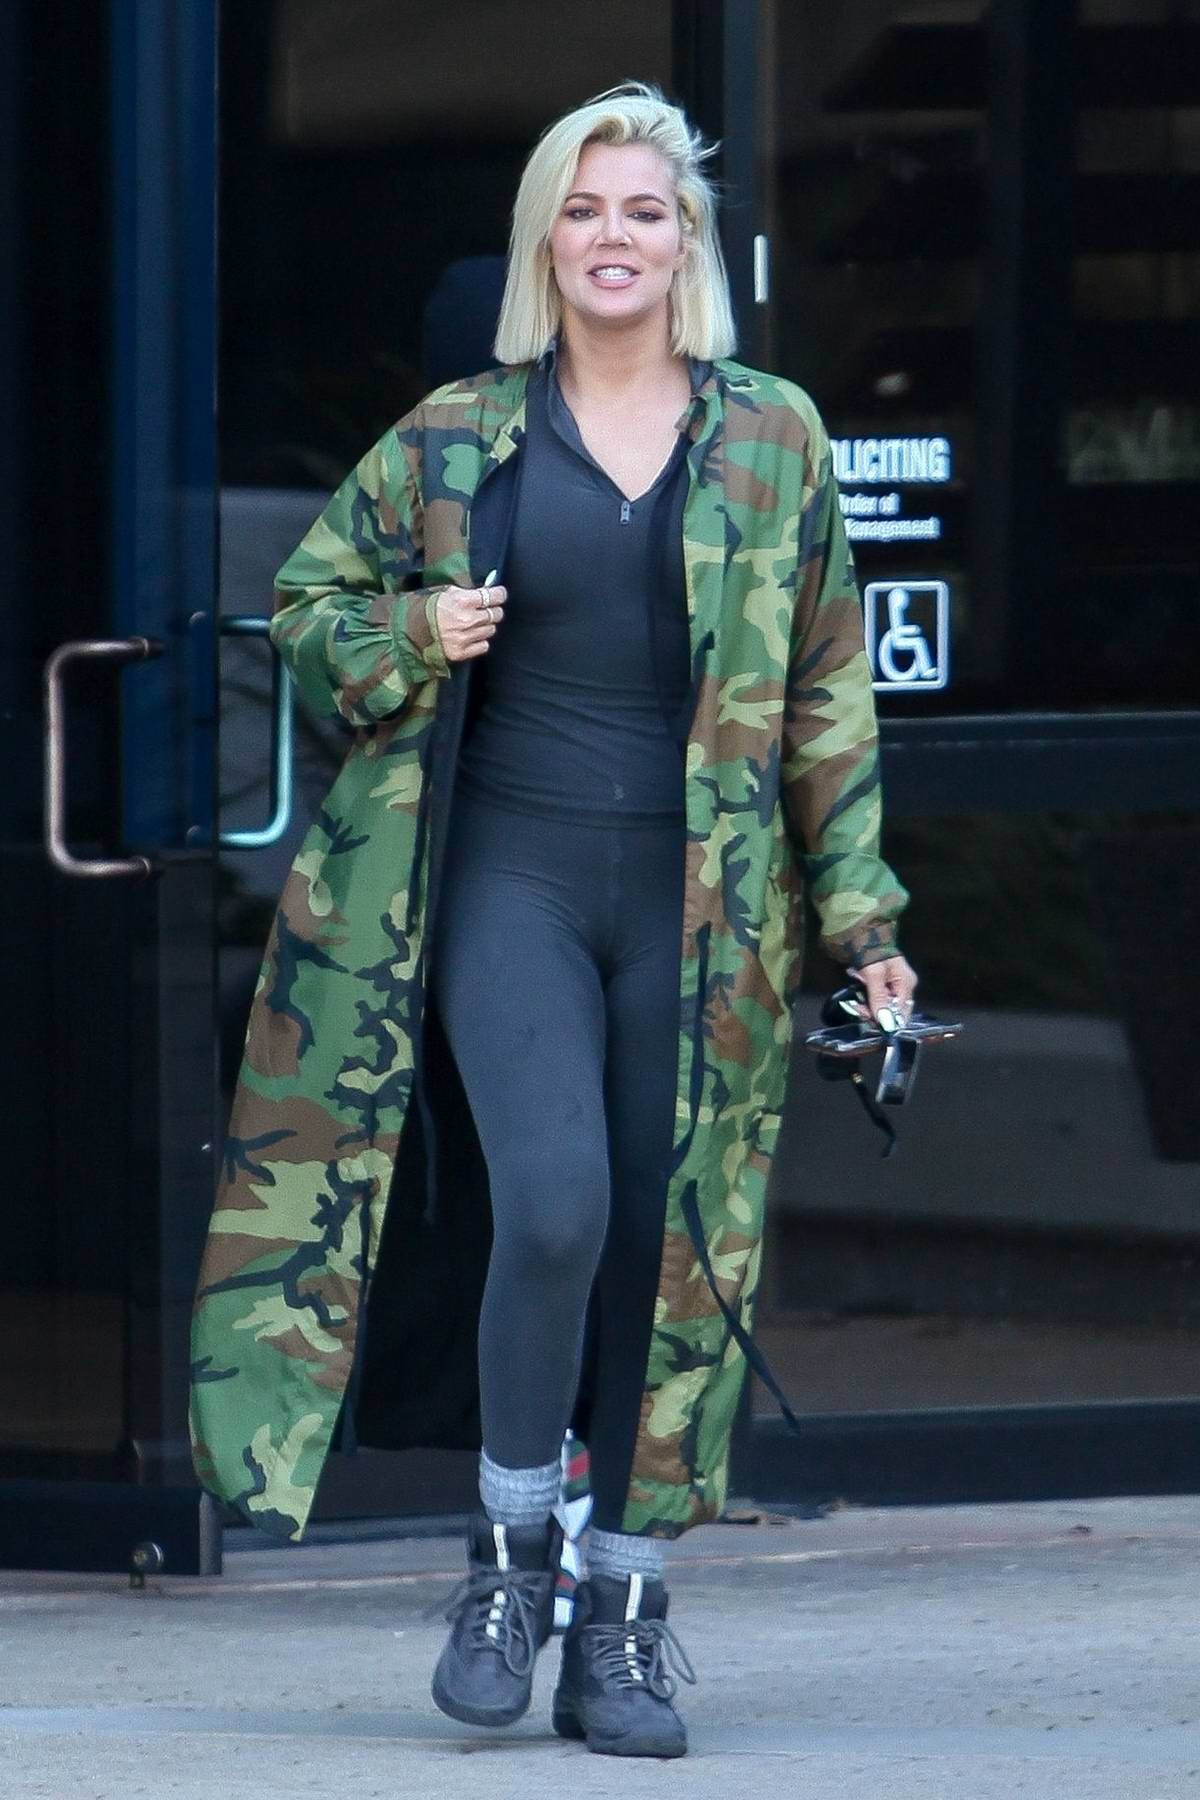 Khloe Kardashian wears a black jumpsuit with camo jacket as she leaves Kanye West's office In Calabasas, California